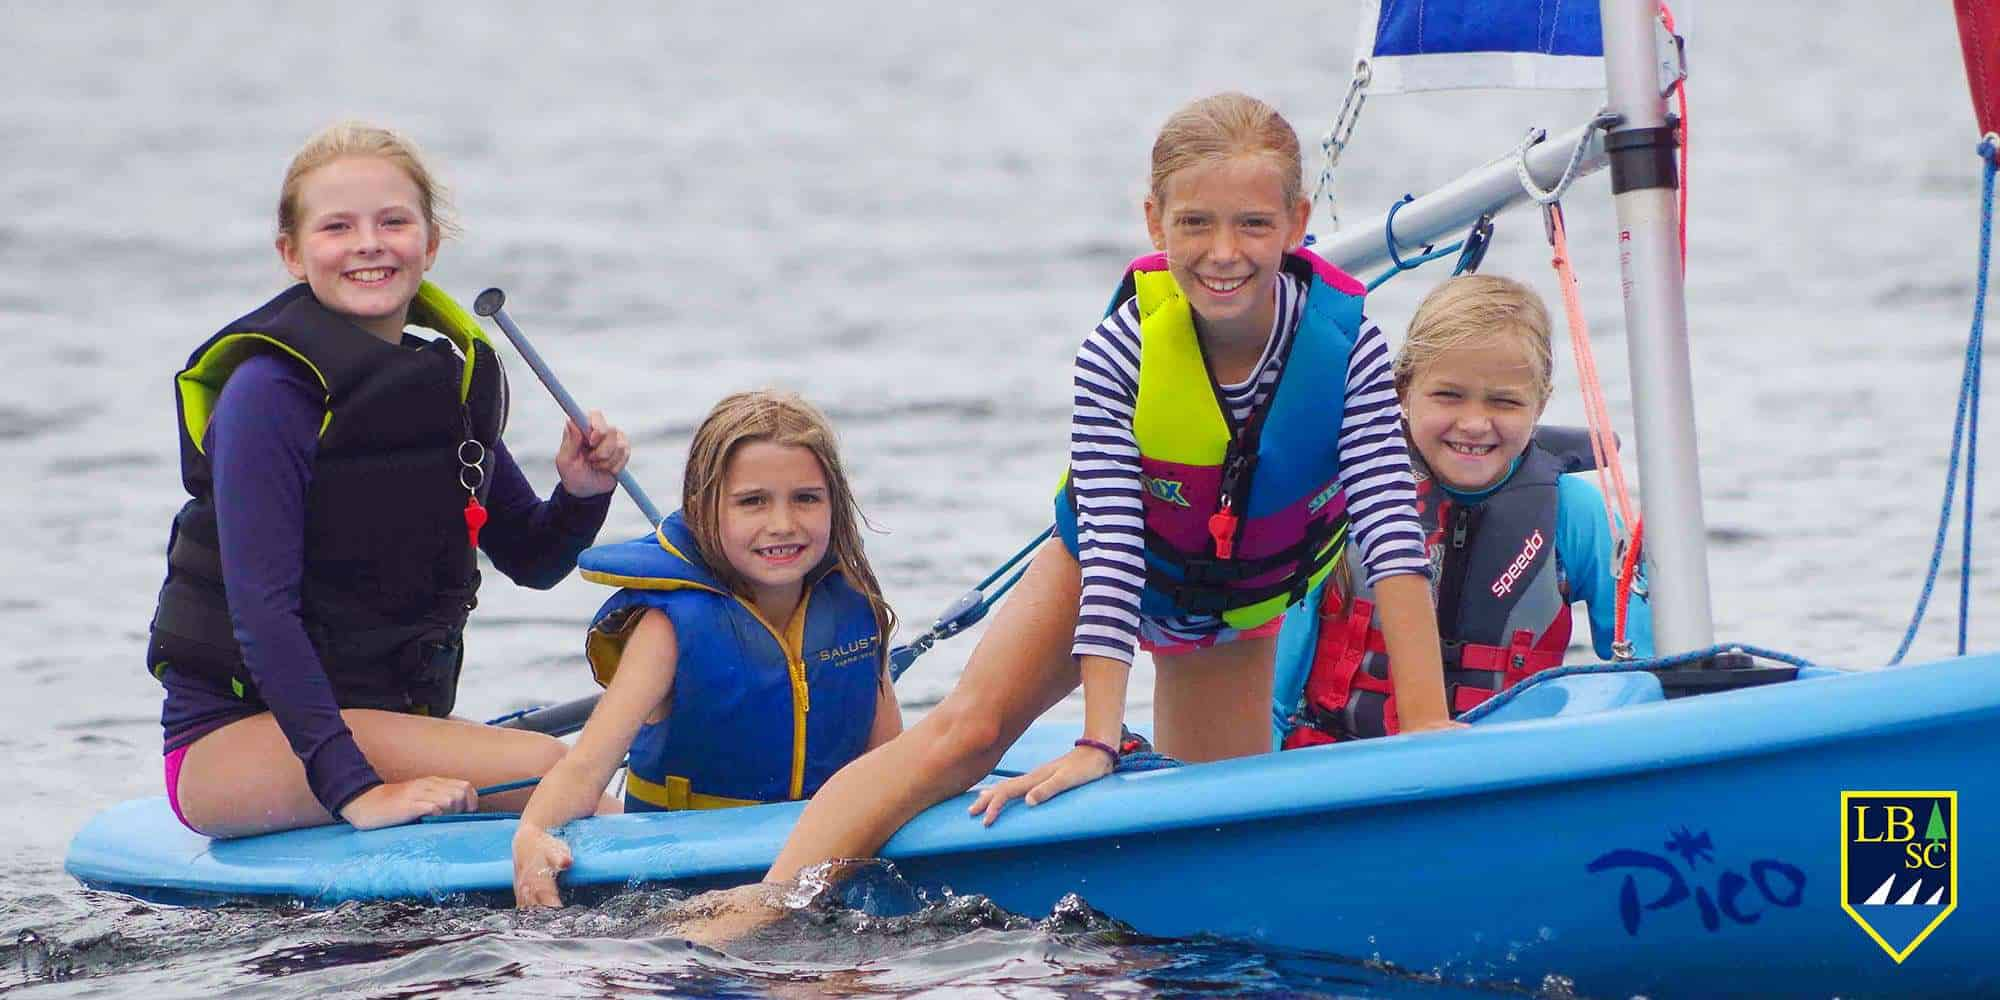 Lake of Bays Sailing Club - Young Salts